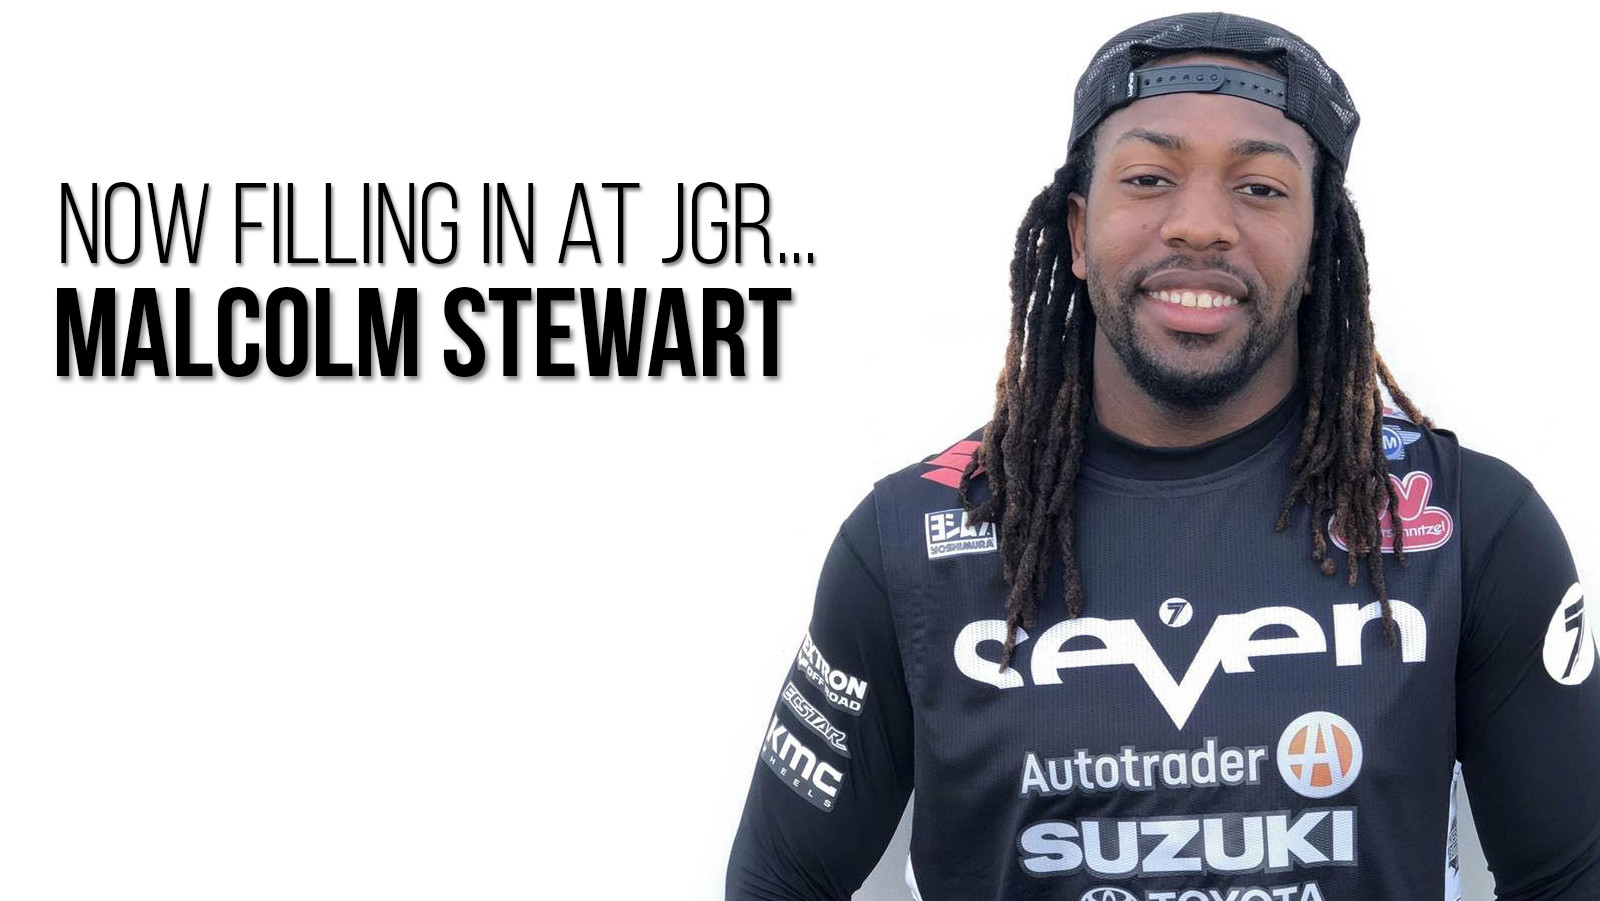 Malcolm Stewart to Fill In for Justin Bogle at AutoTrader.com/Yoshimura/Suzuki?